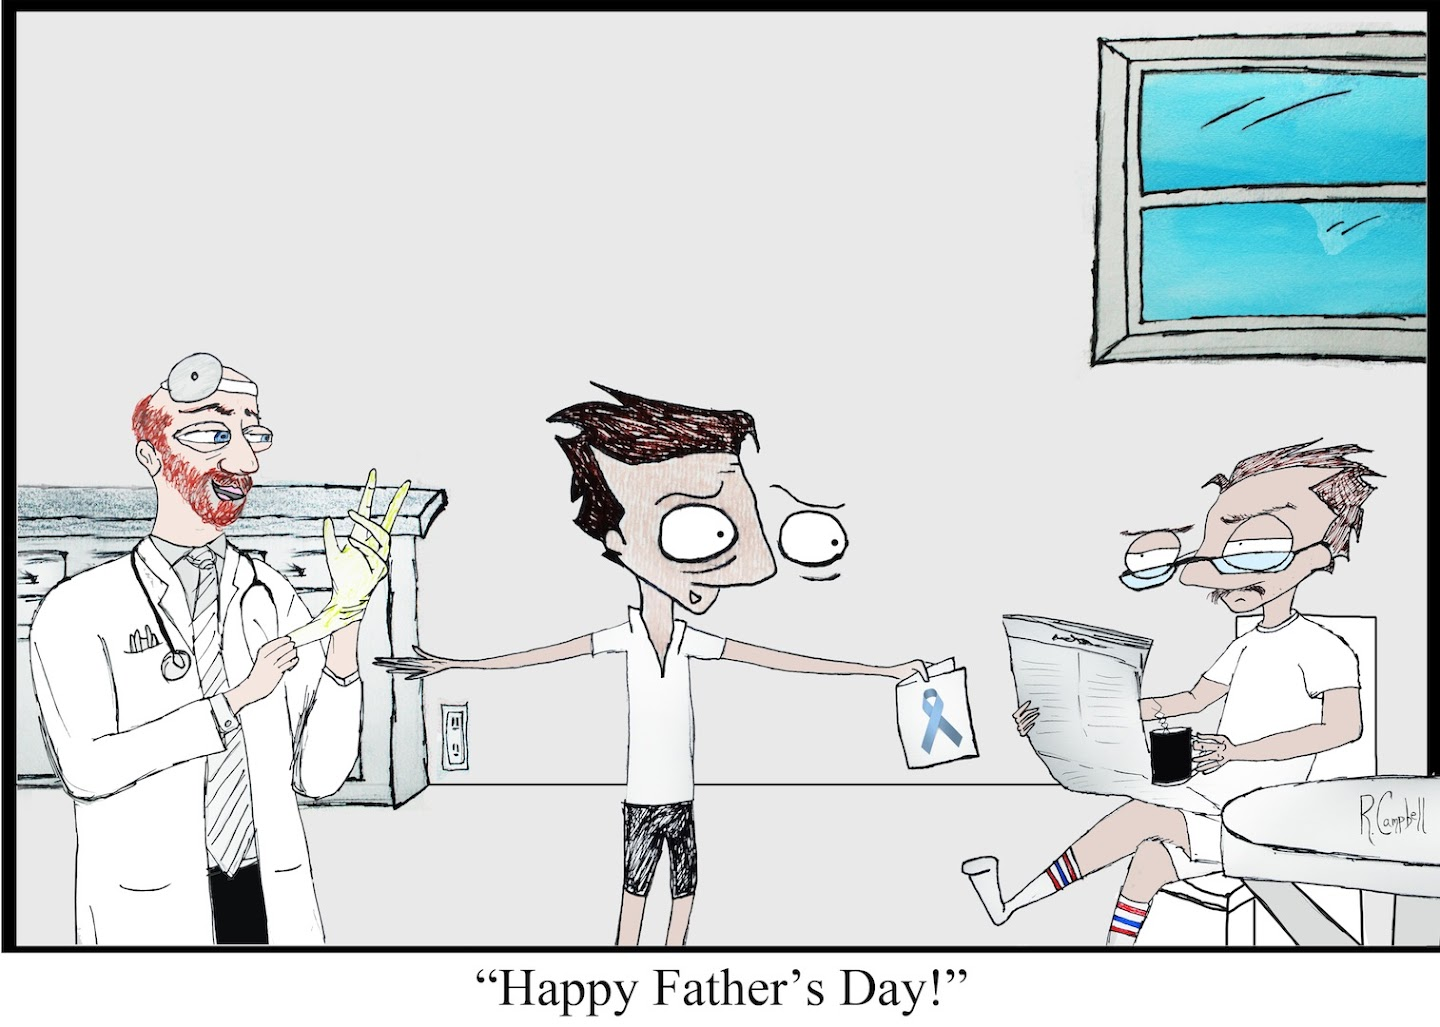 Happy Father's Day by Robby Campbell